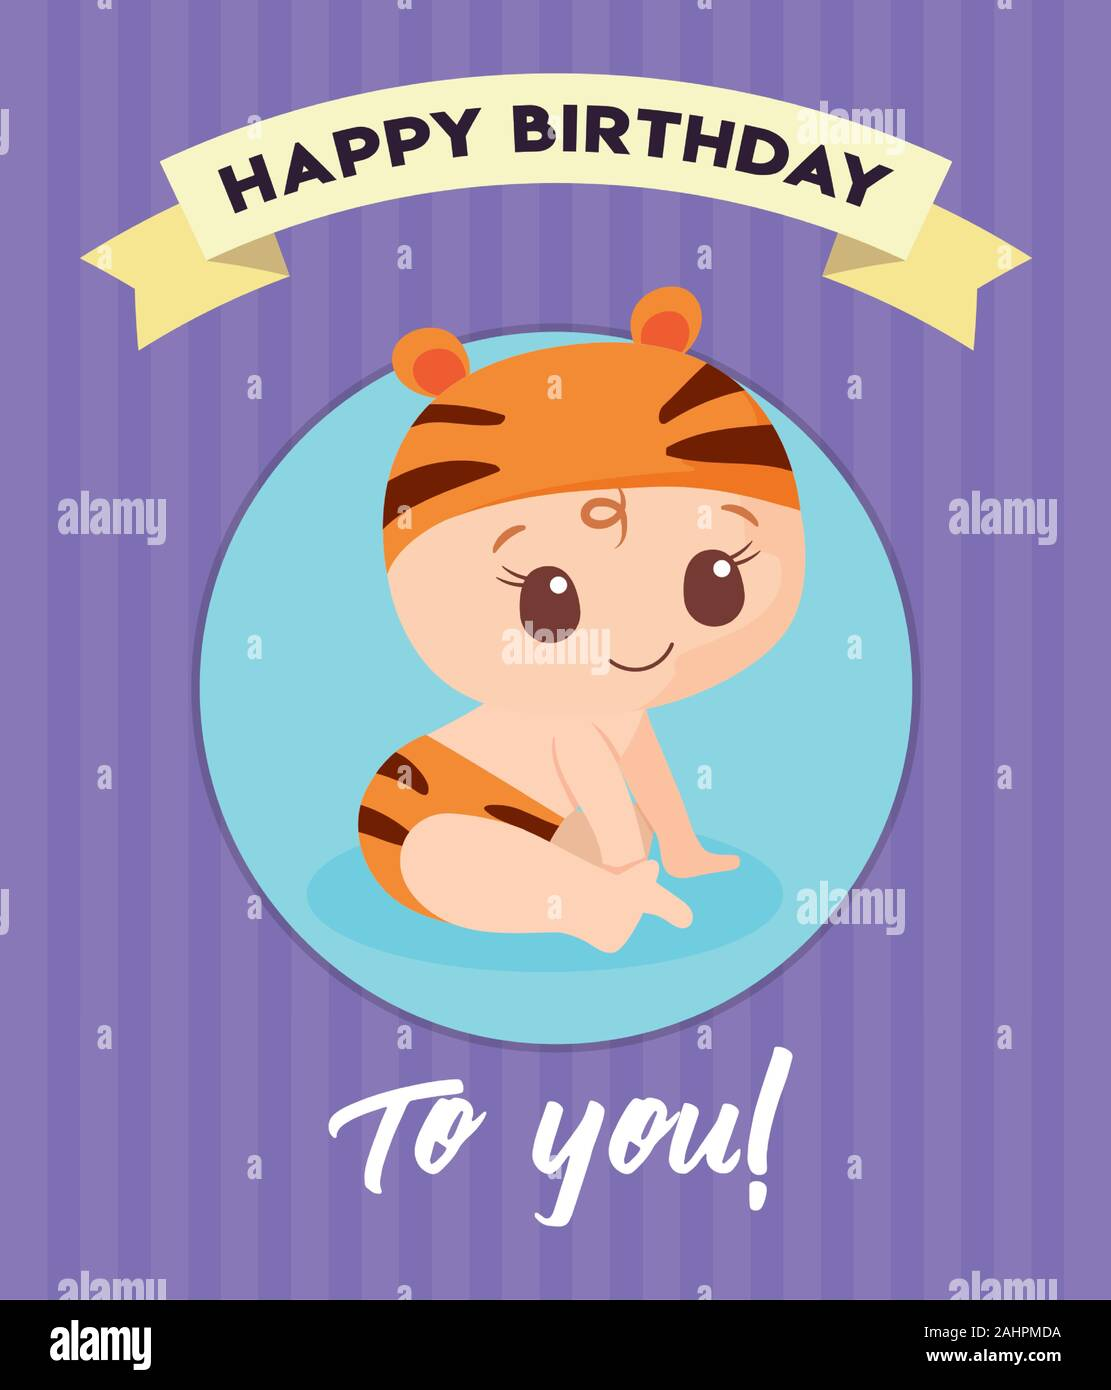 Baby Cartoon Design Happy Birthday Card Celebration